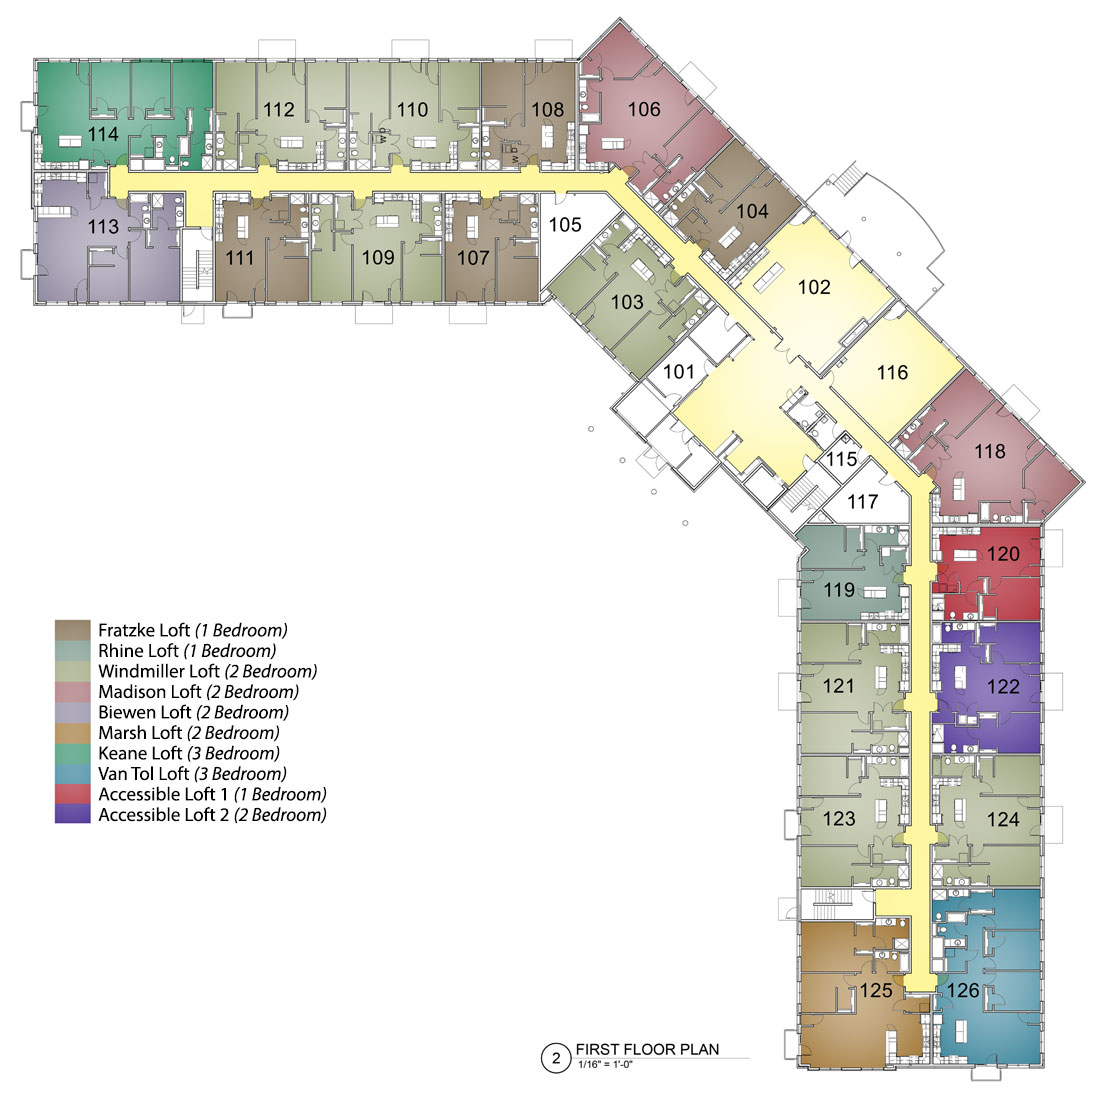 First Floor Layout M2 Lofts - Hotspot